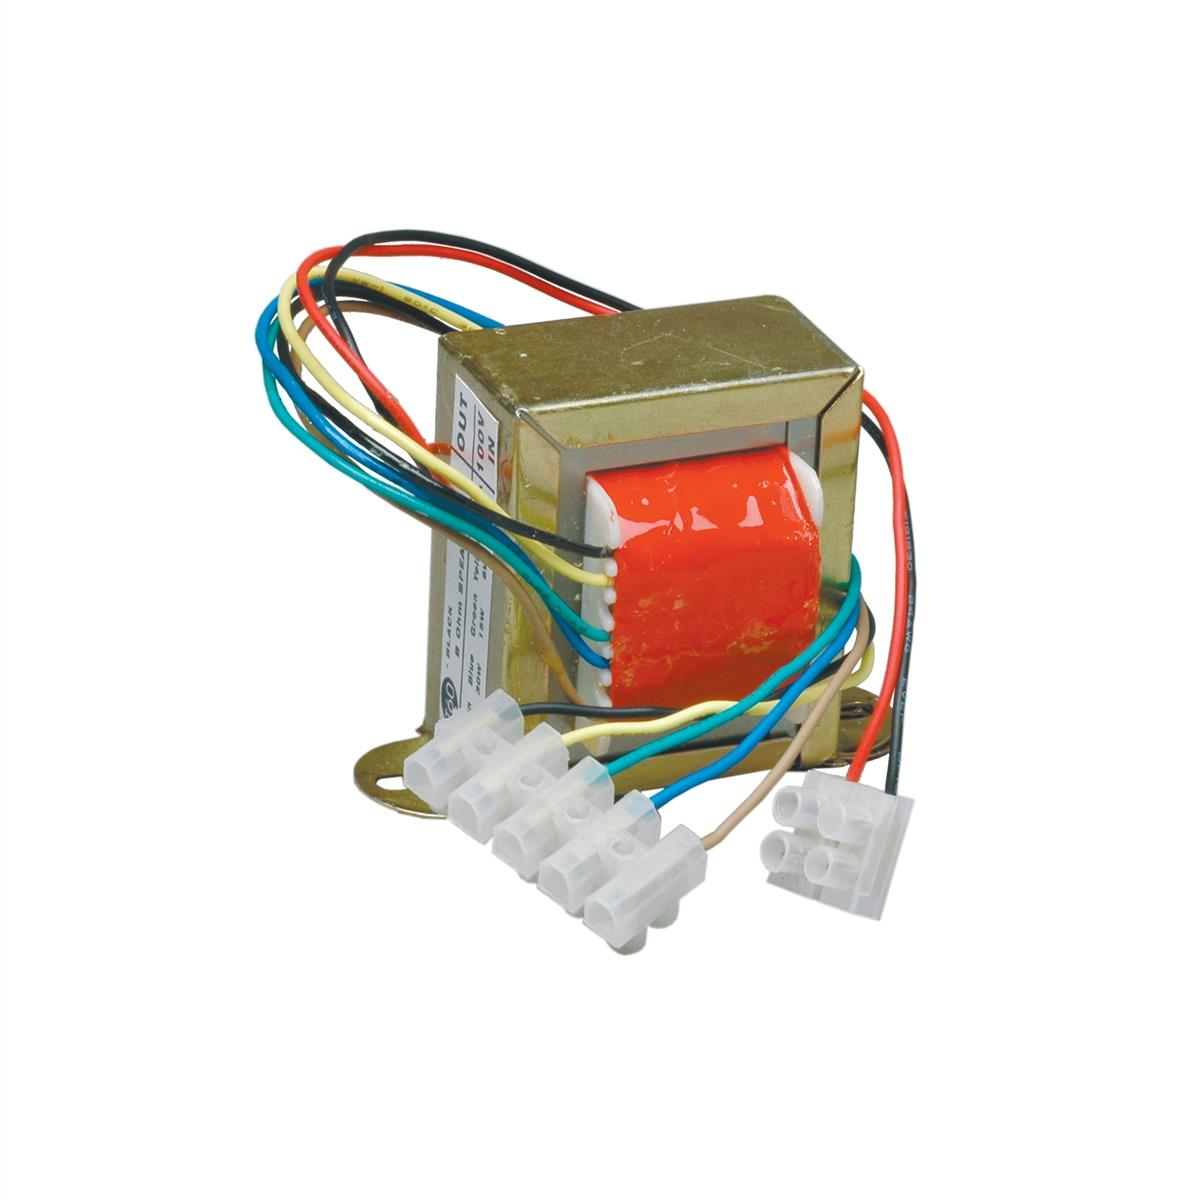 8 ohms to 100 volt transformer, power taps: 60-30-15-6W